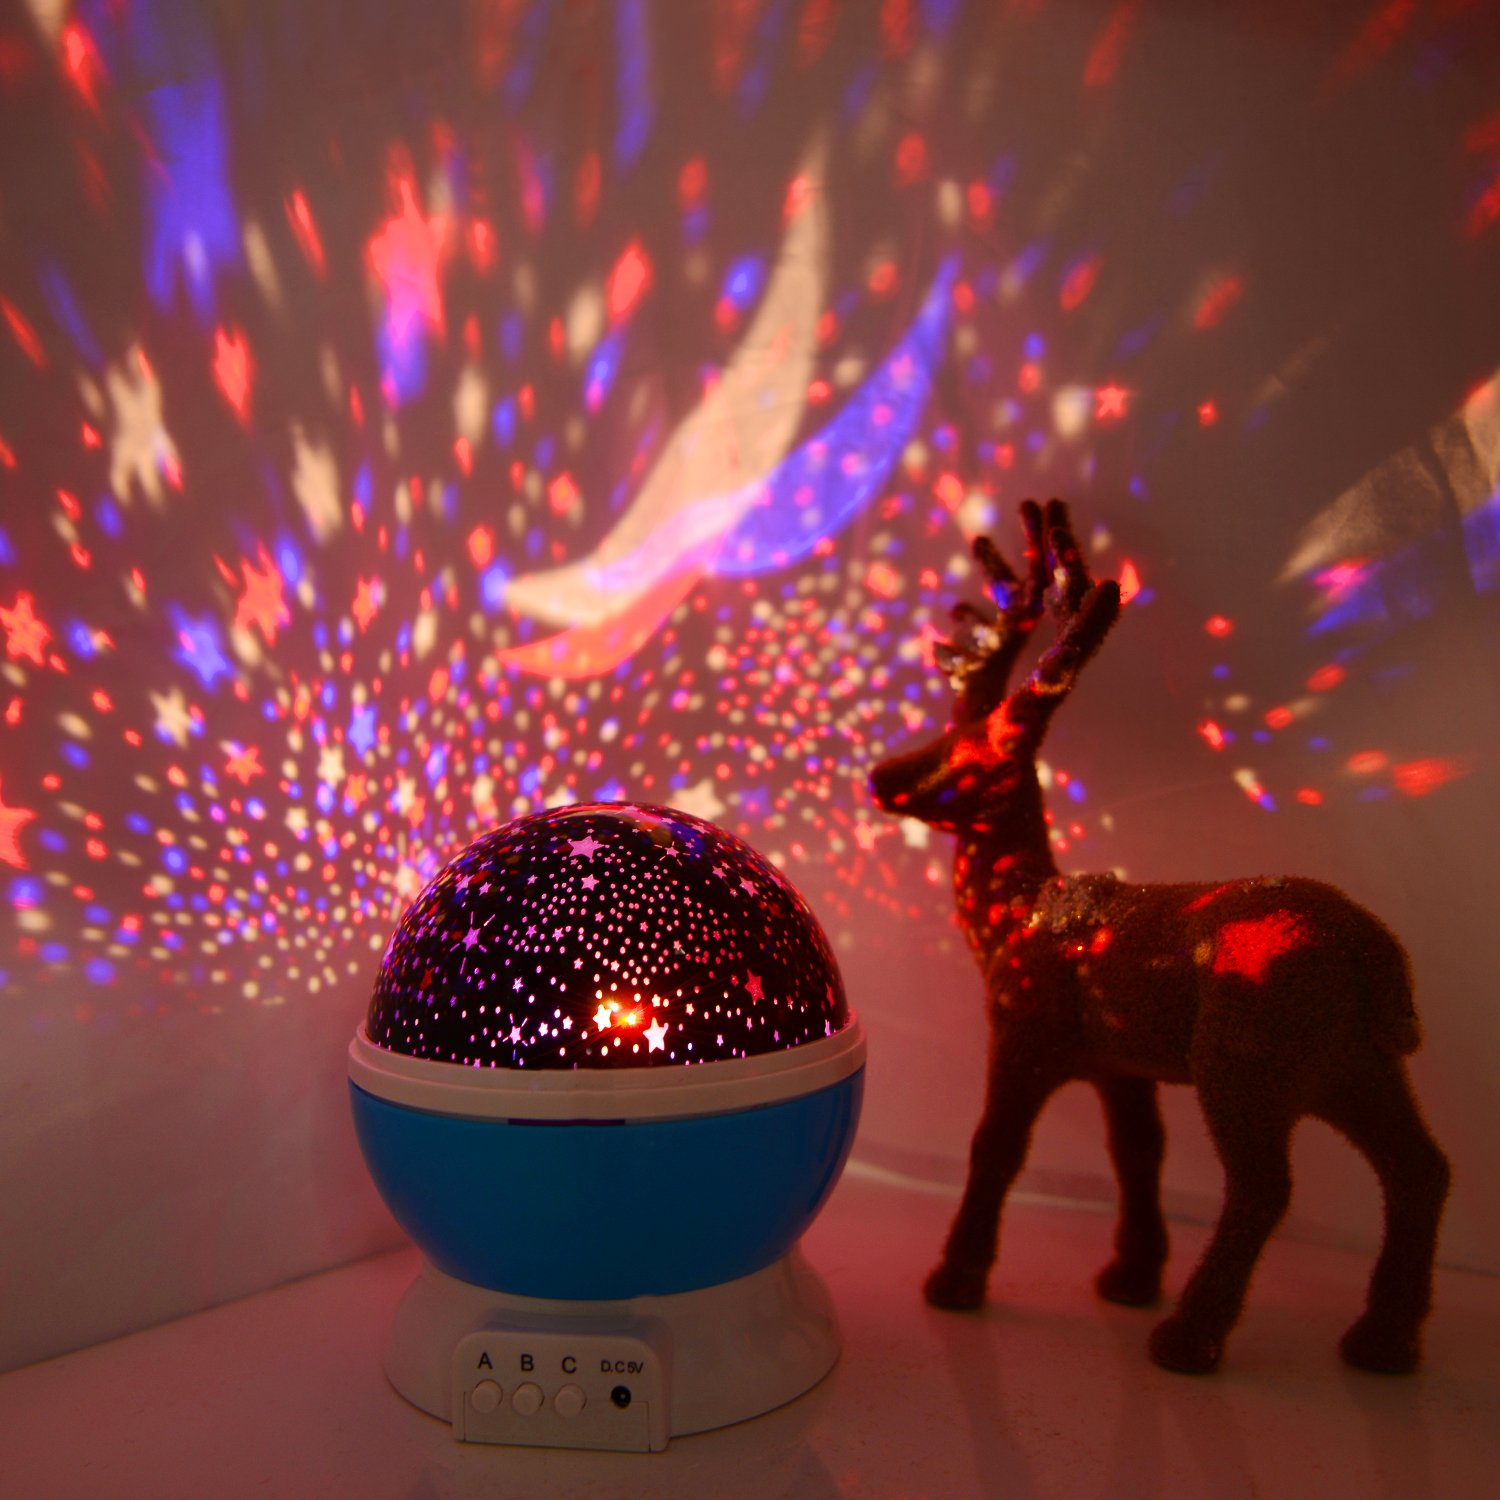 Boomile Star Projector, Kids Night Lights, Baby Lighting Lamp Decoration Light for Baby/Kids, Party